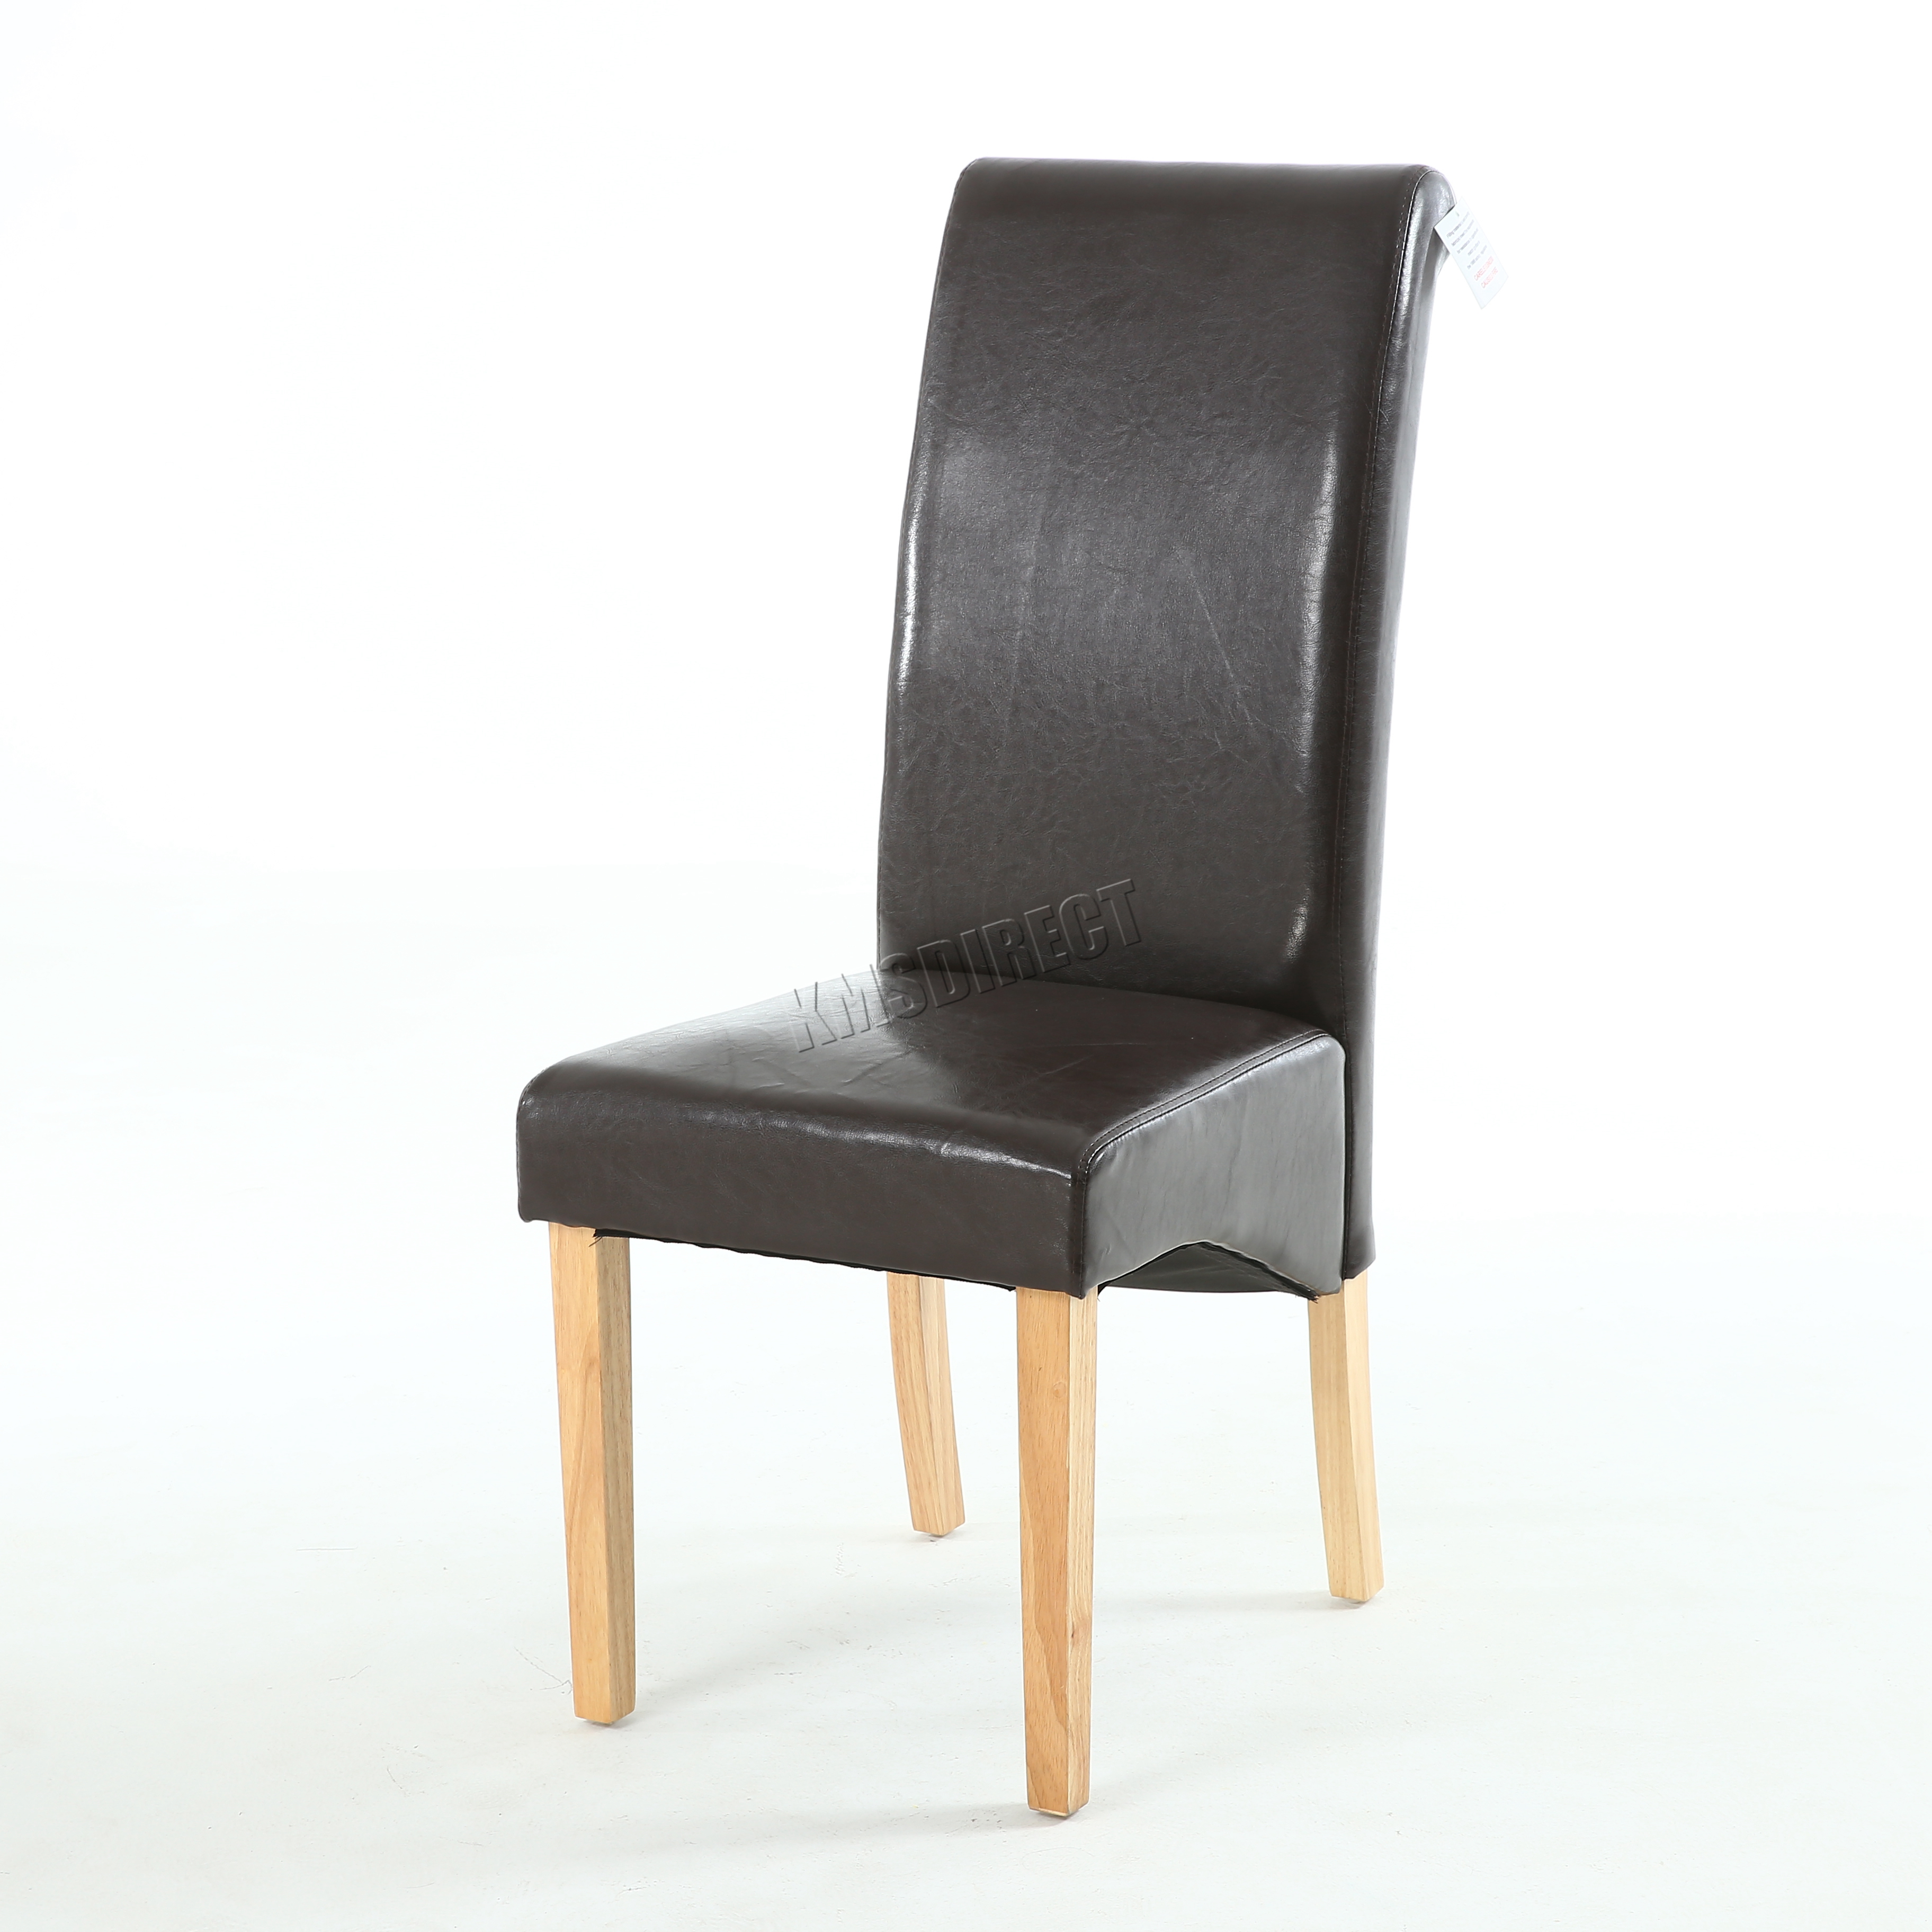 New Brown Faux Leather Dining Chairs Roll Top Scroll High Back Wood Legs Kitchen